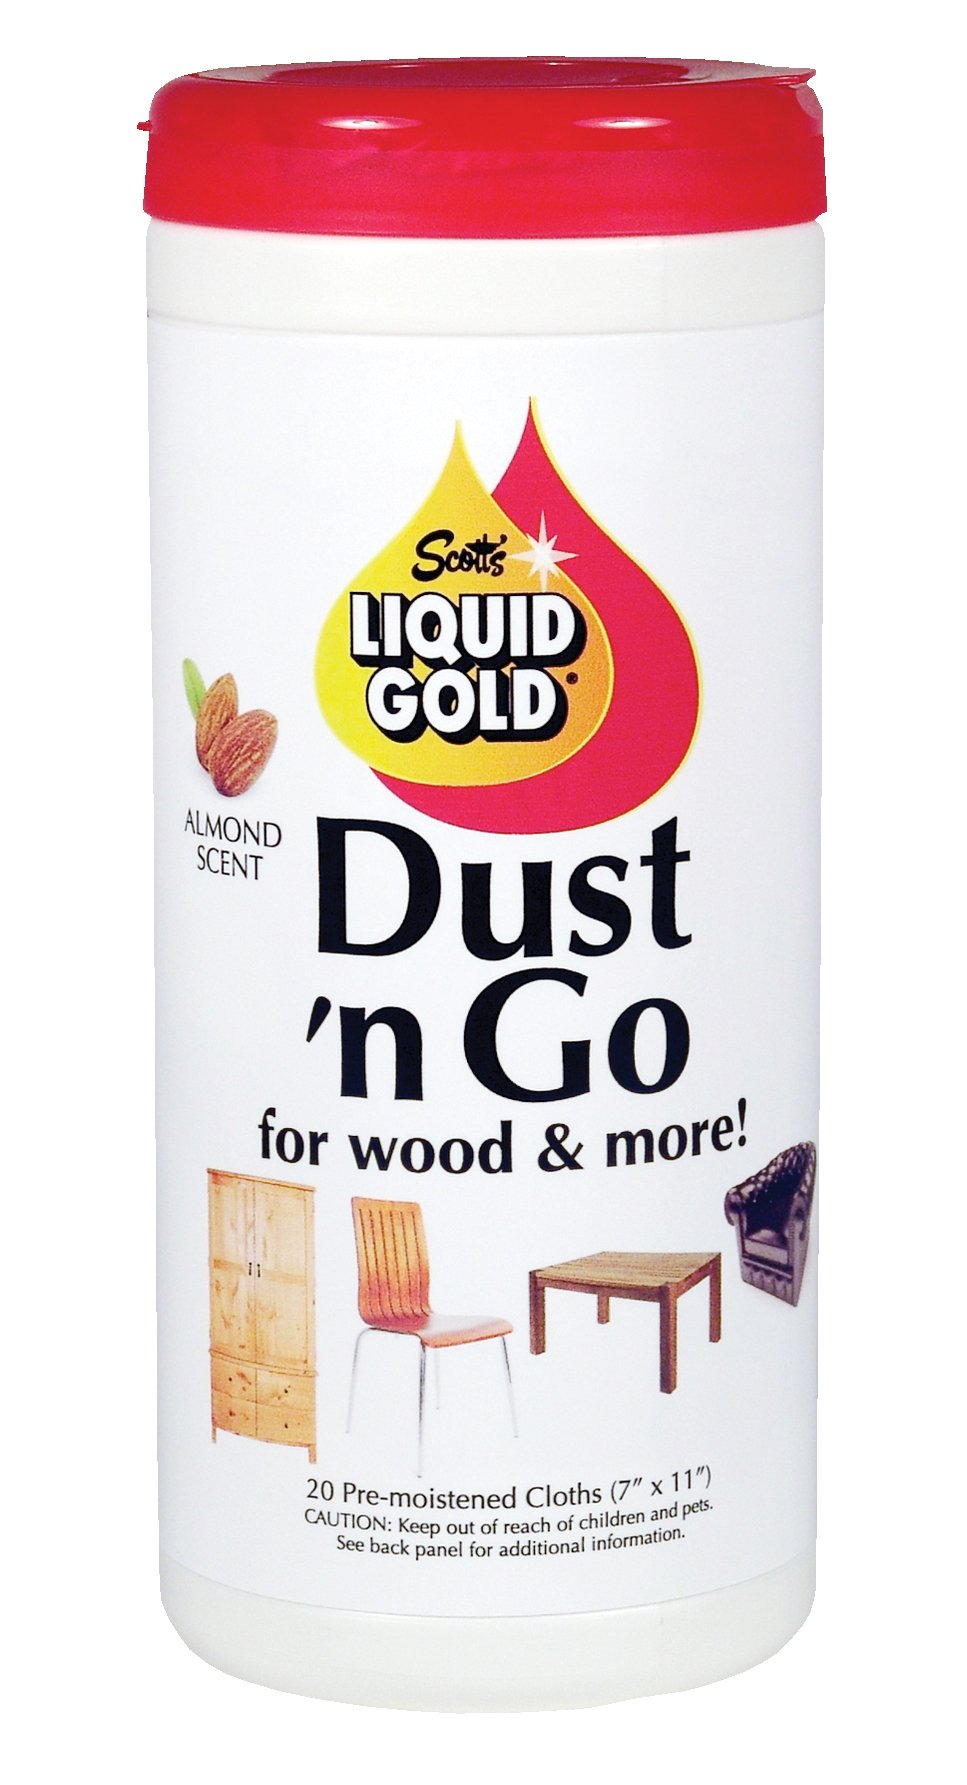 Scott's Liquid Gold 20 Count Dust 'N Go Cleaning Wipes For Wood & More